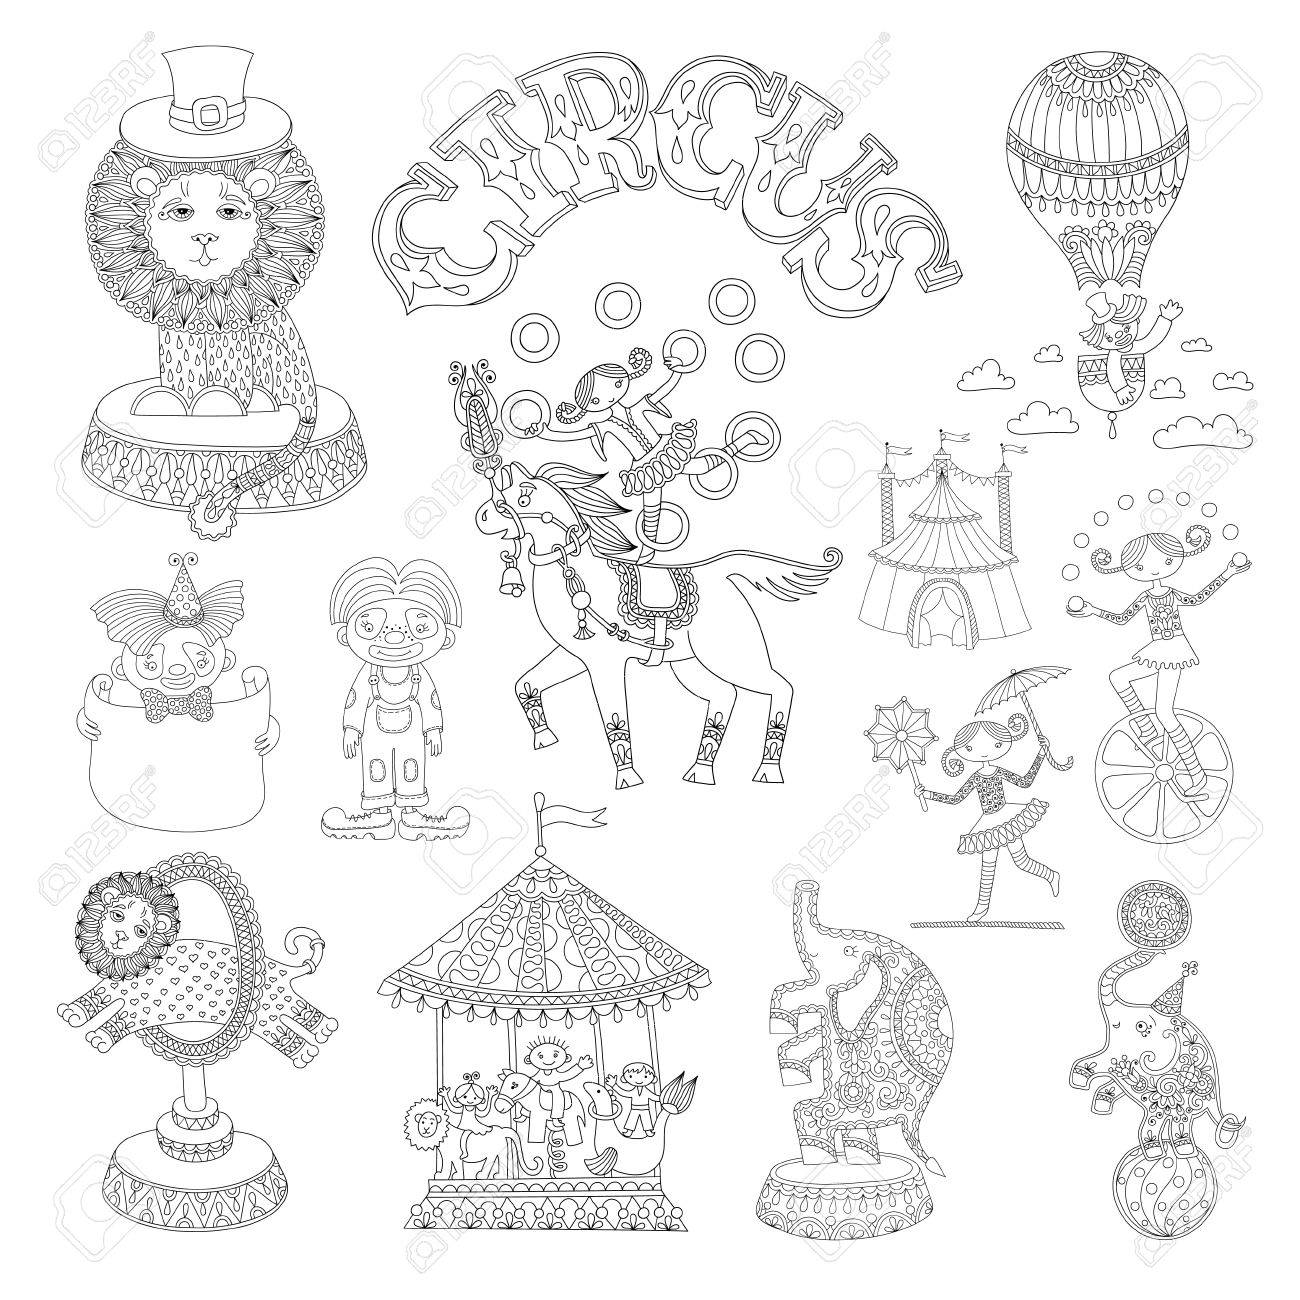 black and white line art drawings collection of circus theme,..